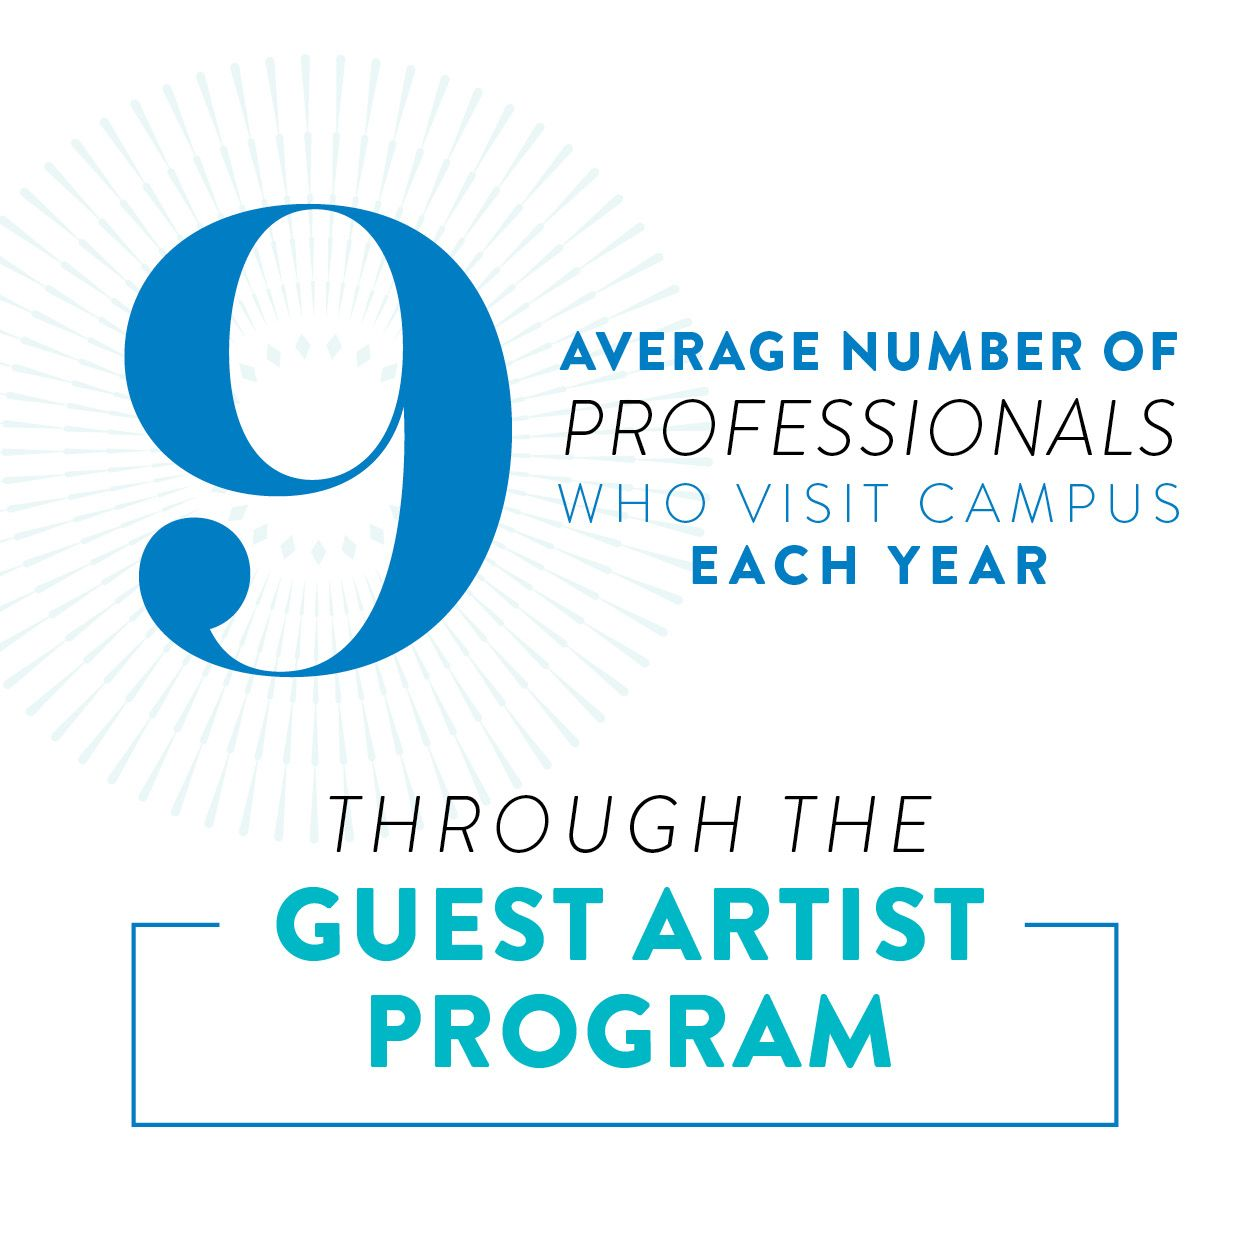 9: average number of professionals who visit campus each year through the Guest Artist Program